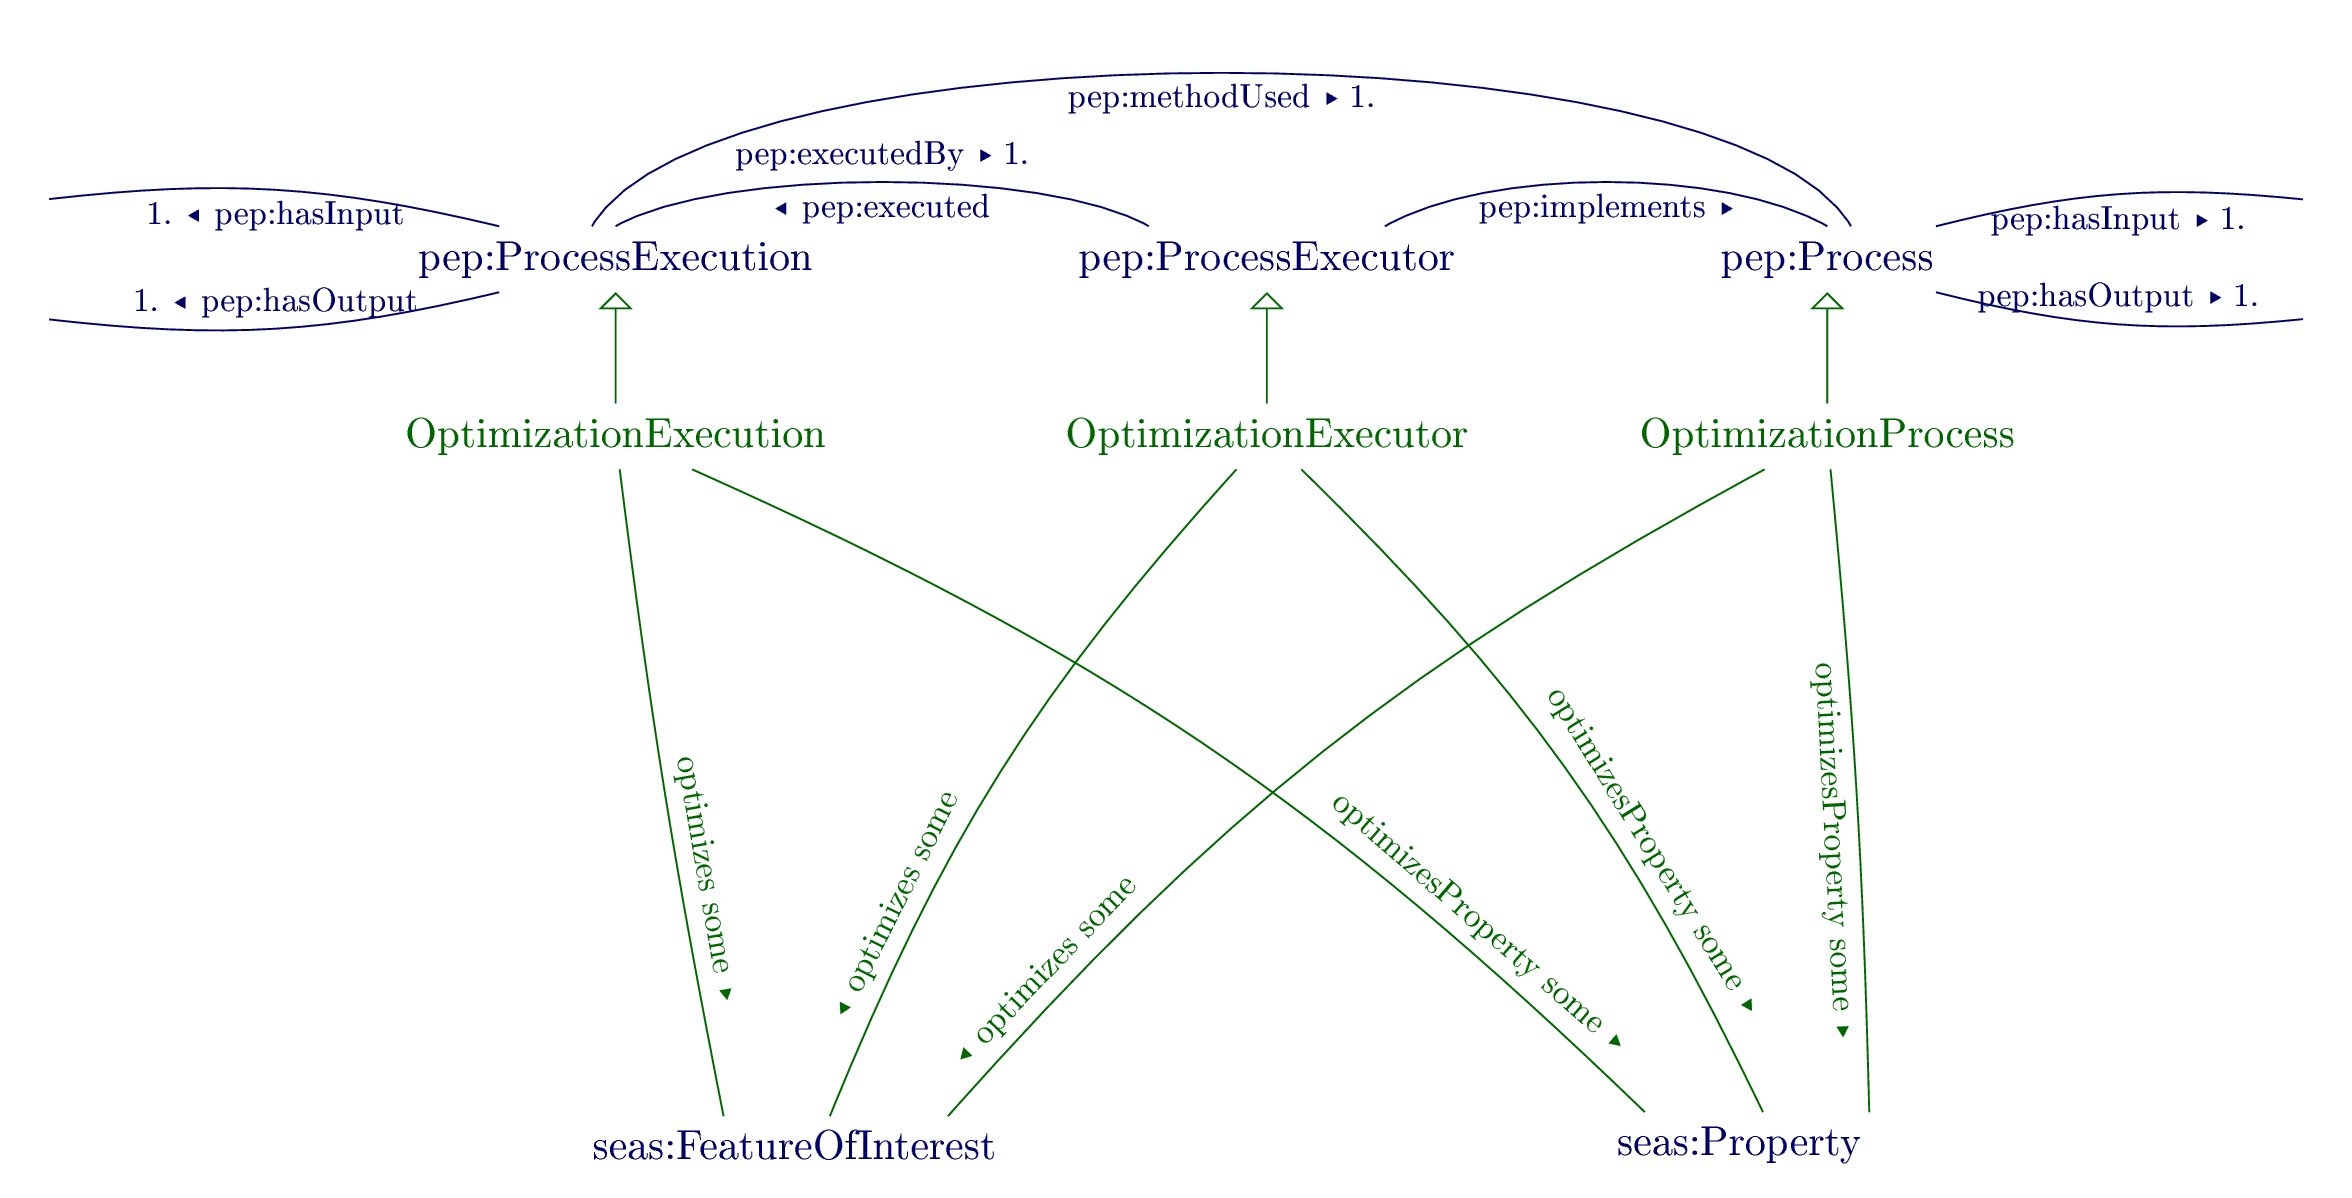 Overview of the Optimization ontology